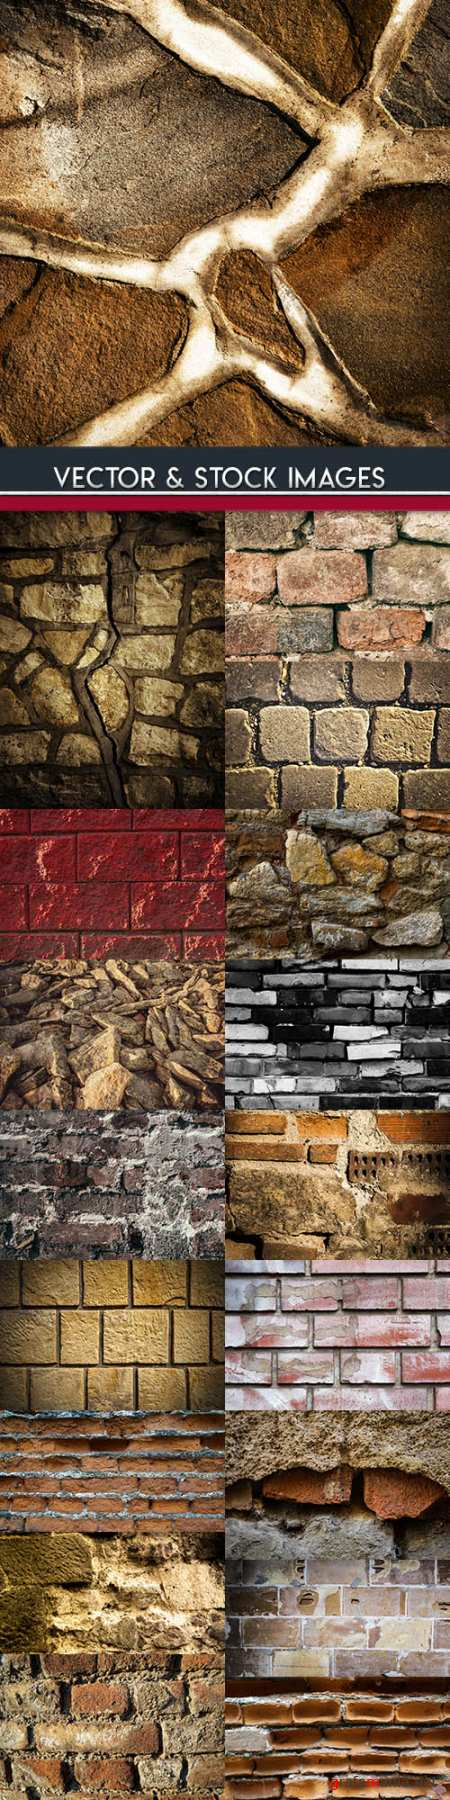 Old brick and stone wall grunge material background